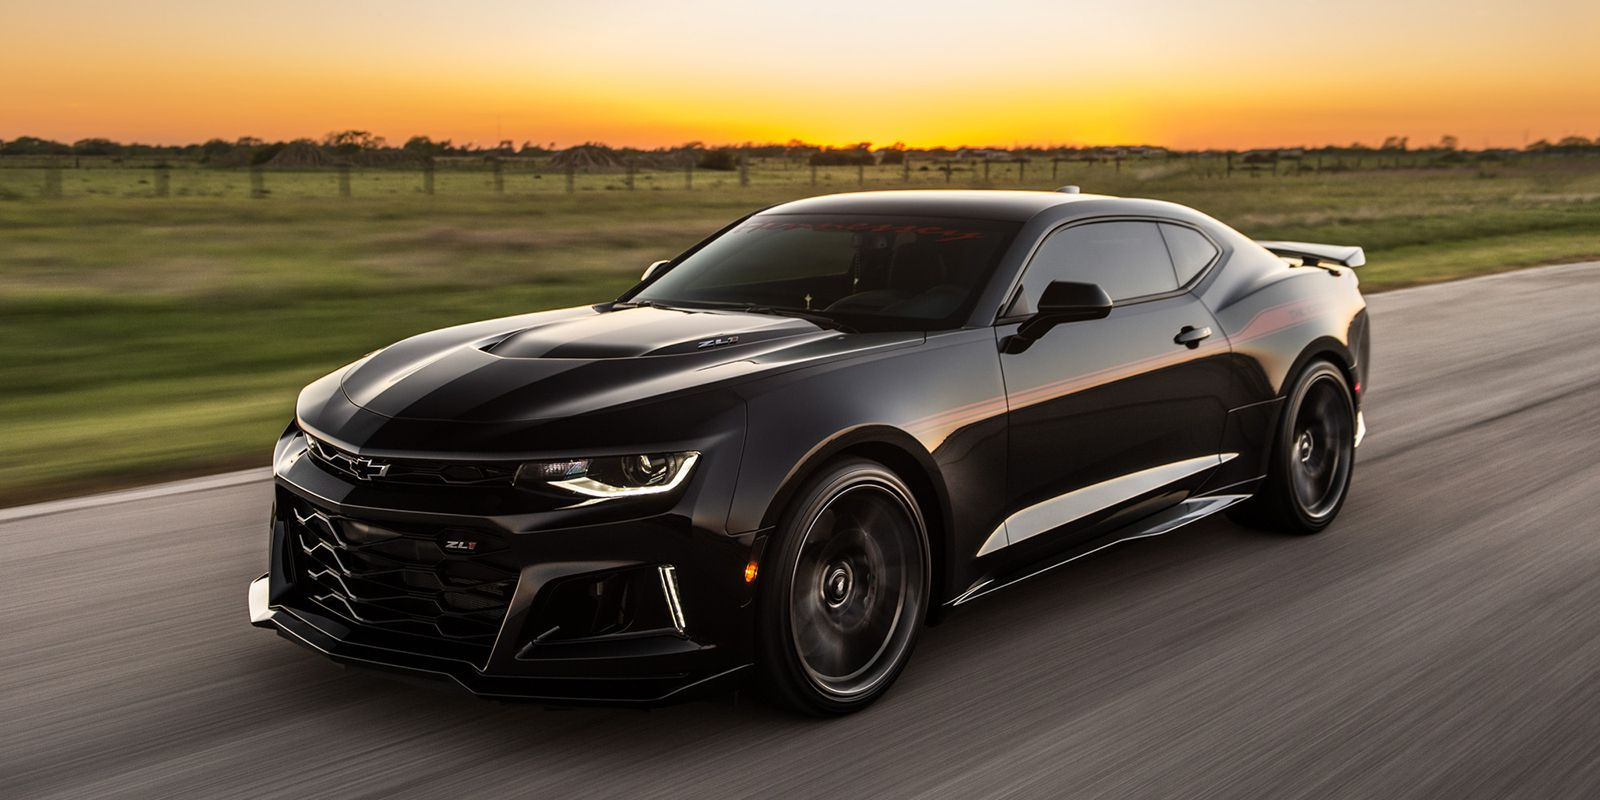 Hennessey Just Built A 1000 Hp Camaro Zl1 To Challenge The Demon